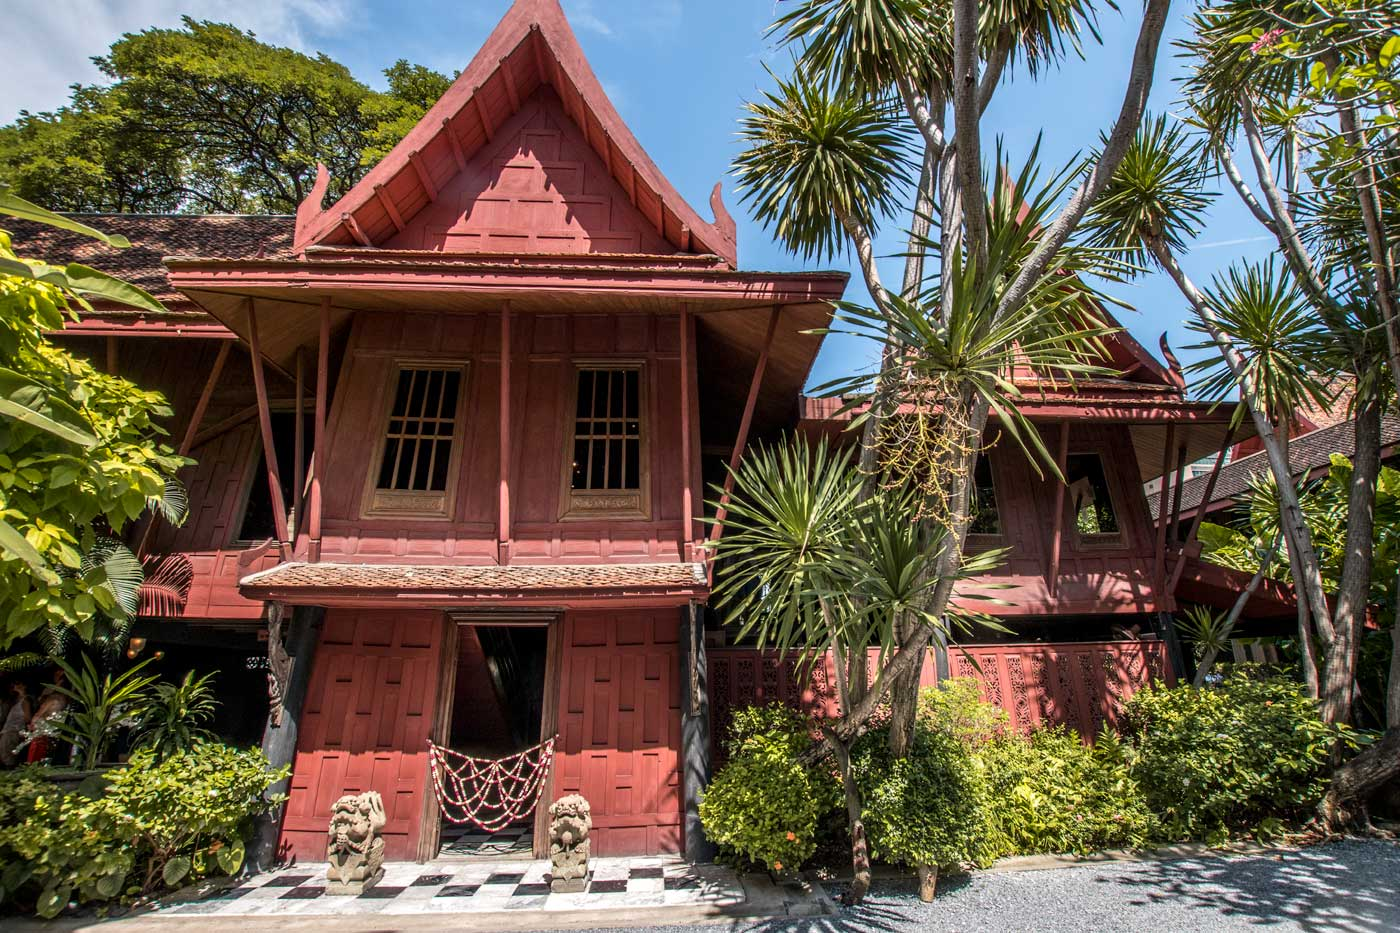 bangkok facts - jim thompson house